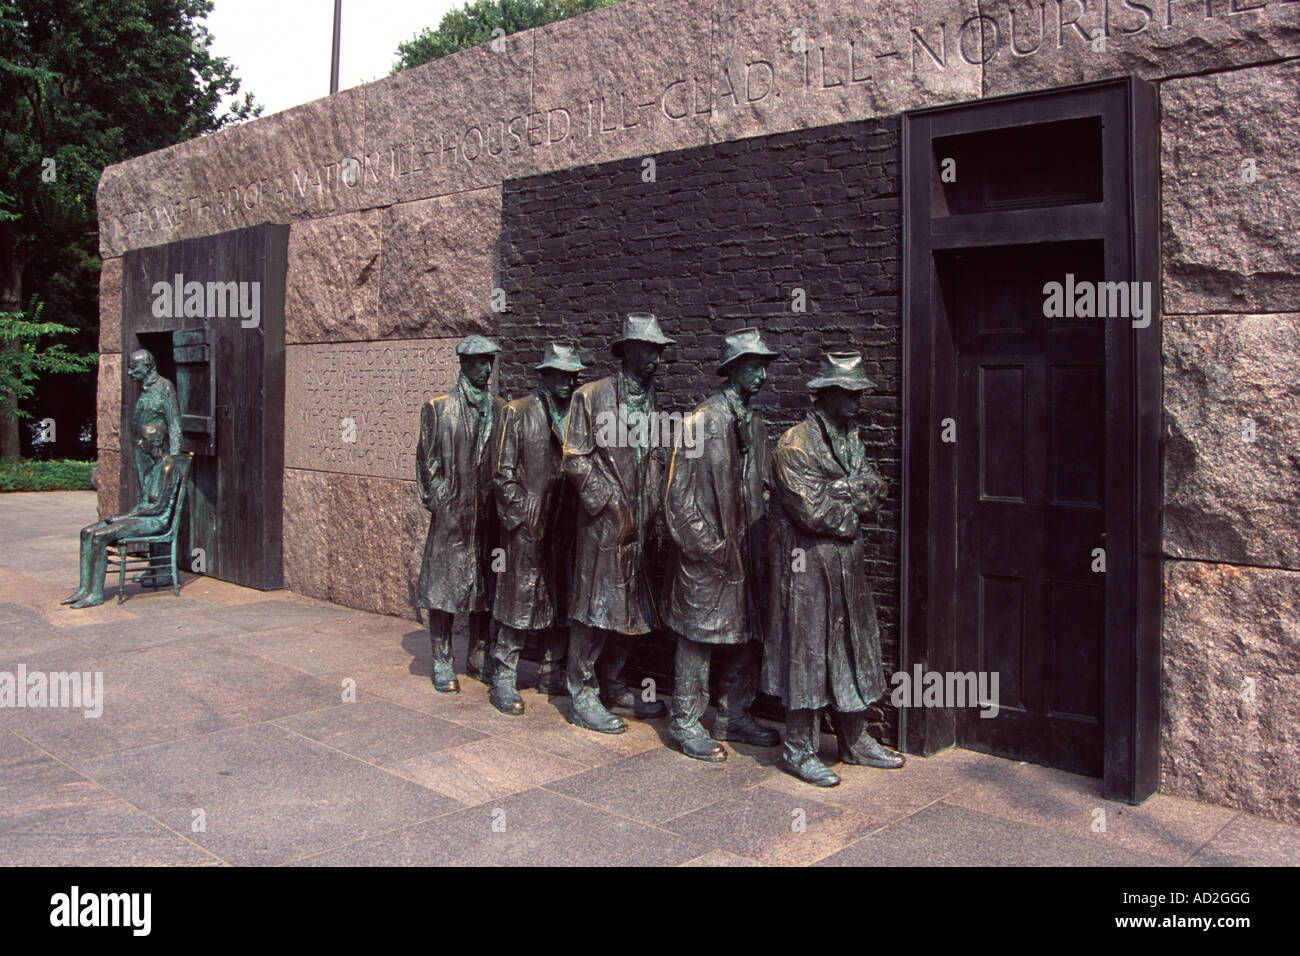 Franklin Delano Roosevelt Memorial, Statue of Great Depression bread line, Washington, DC, USA - Stock Image